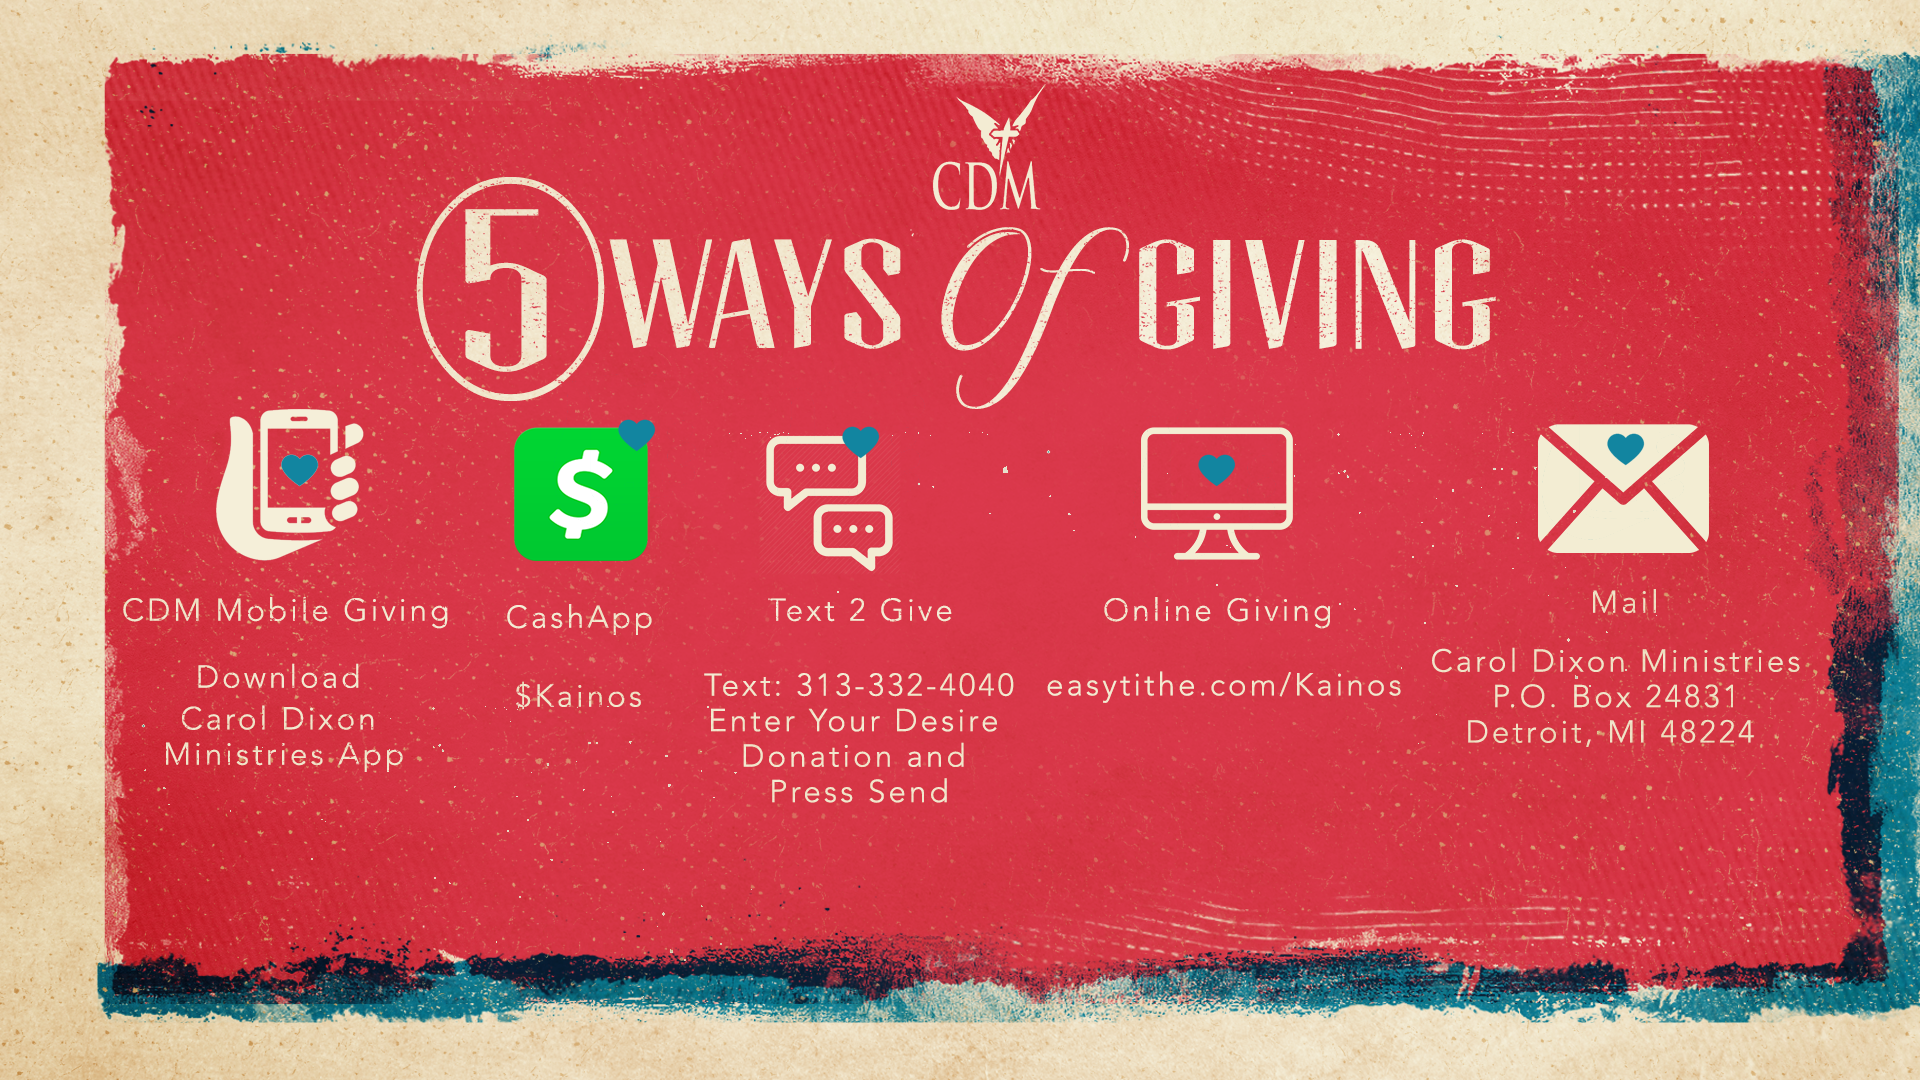 5 Ways of Giving